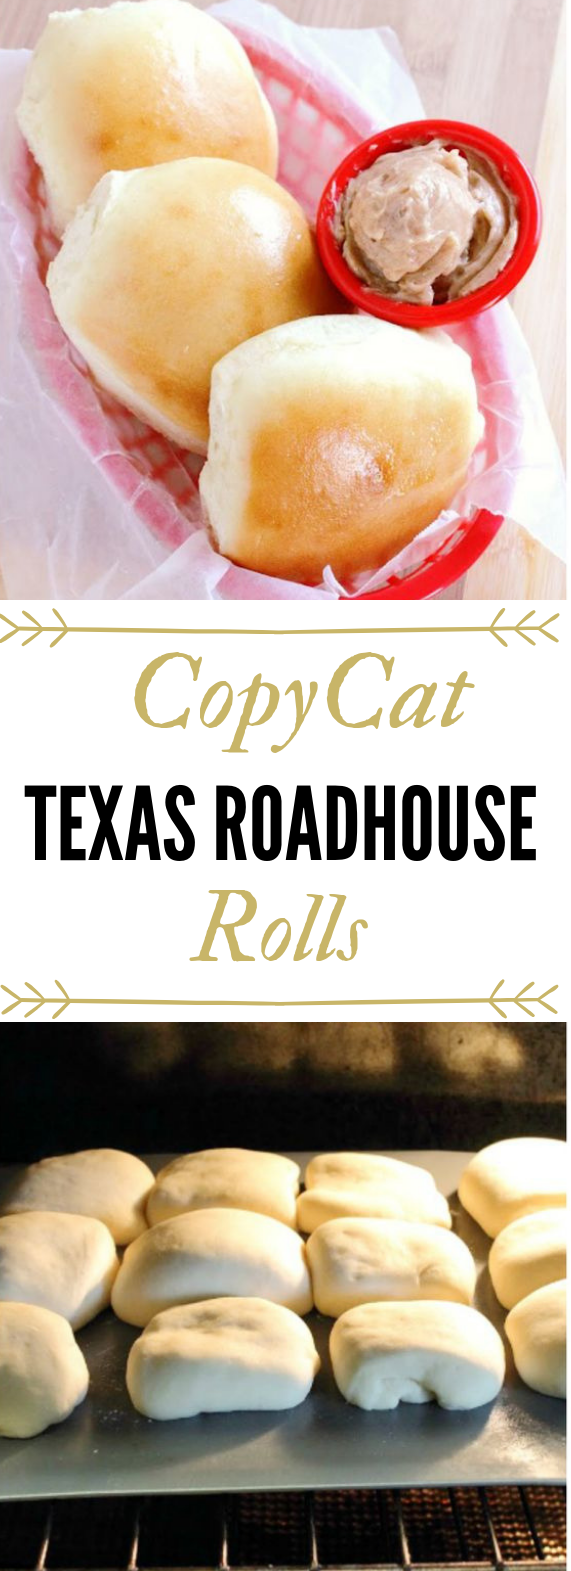 Copycat Texas Roadhouse Rolls and Cinnamon Butter Recipe #healthydinner #roadhouseroll